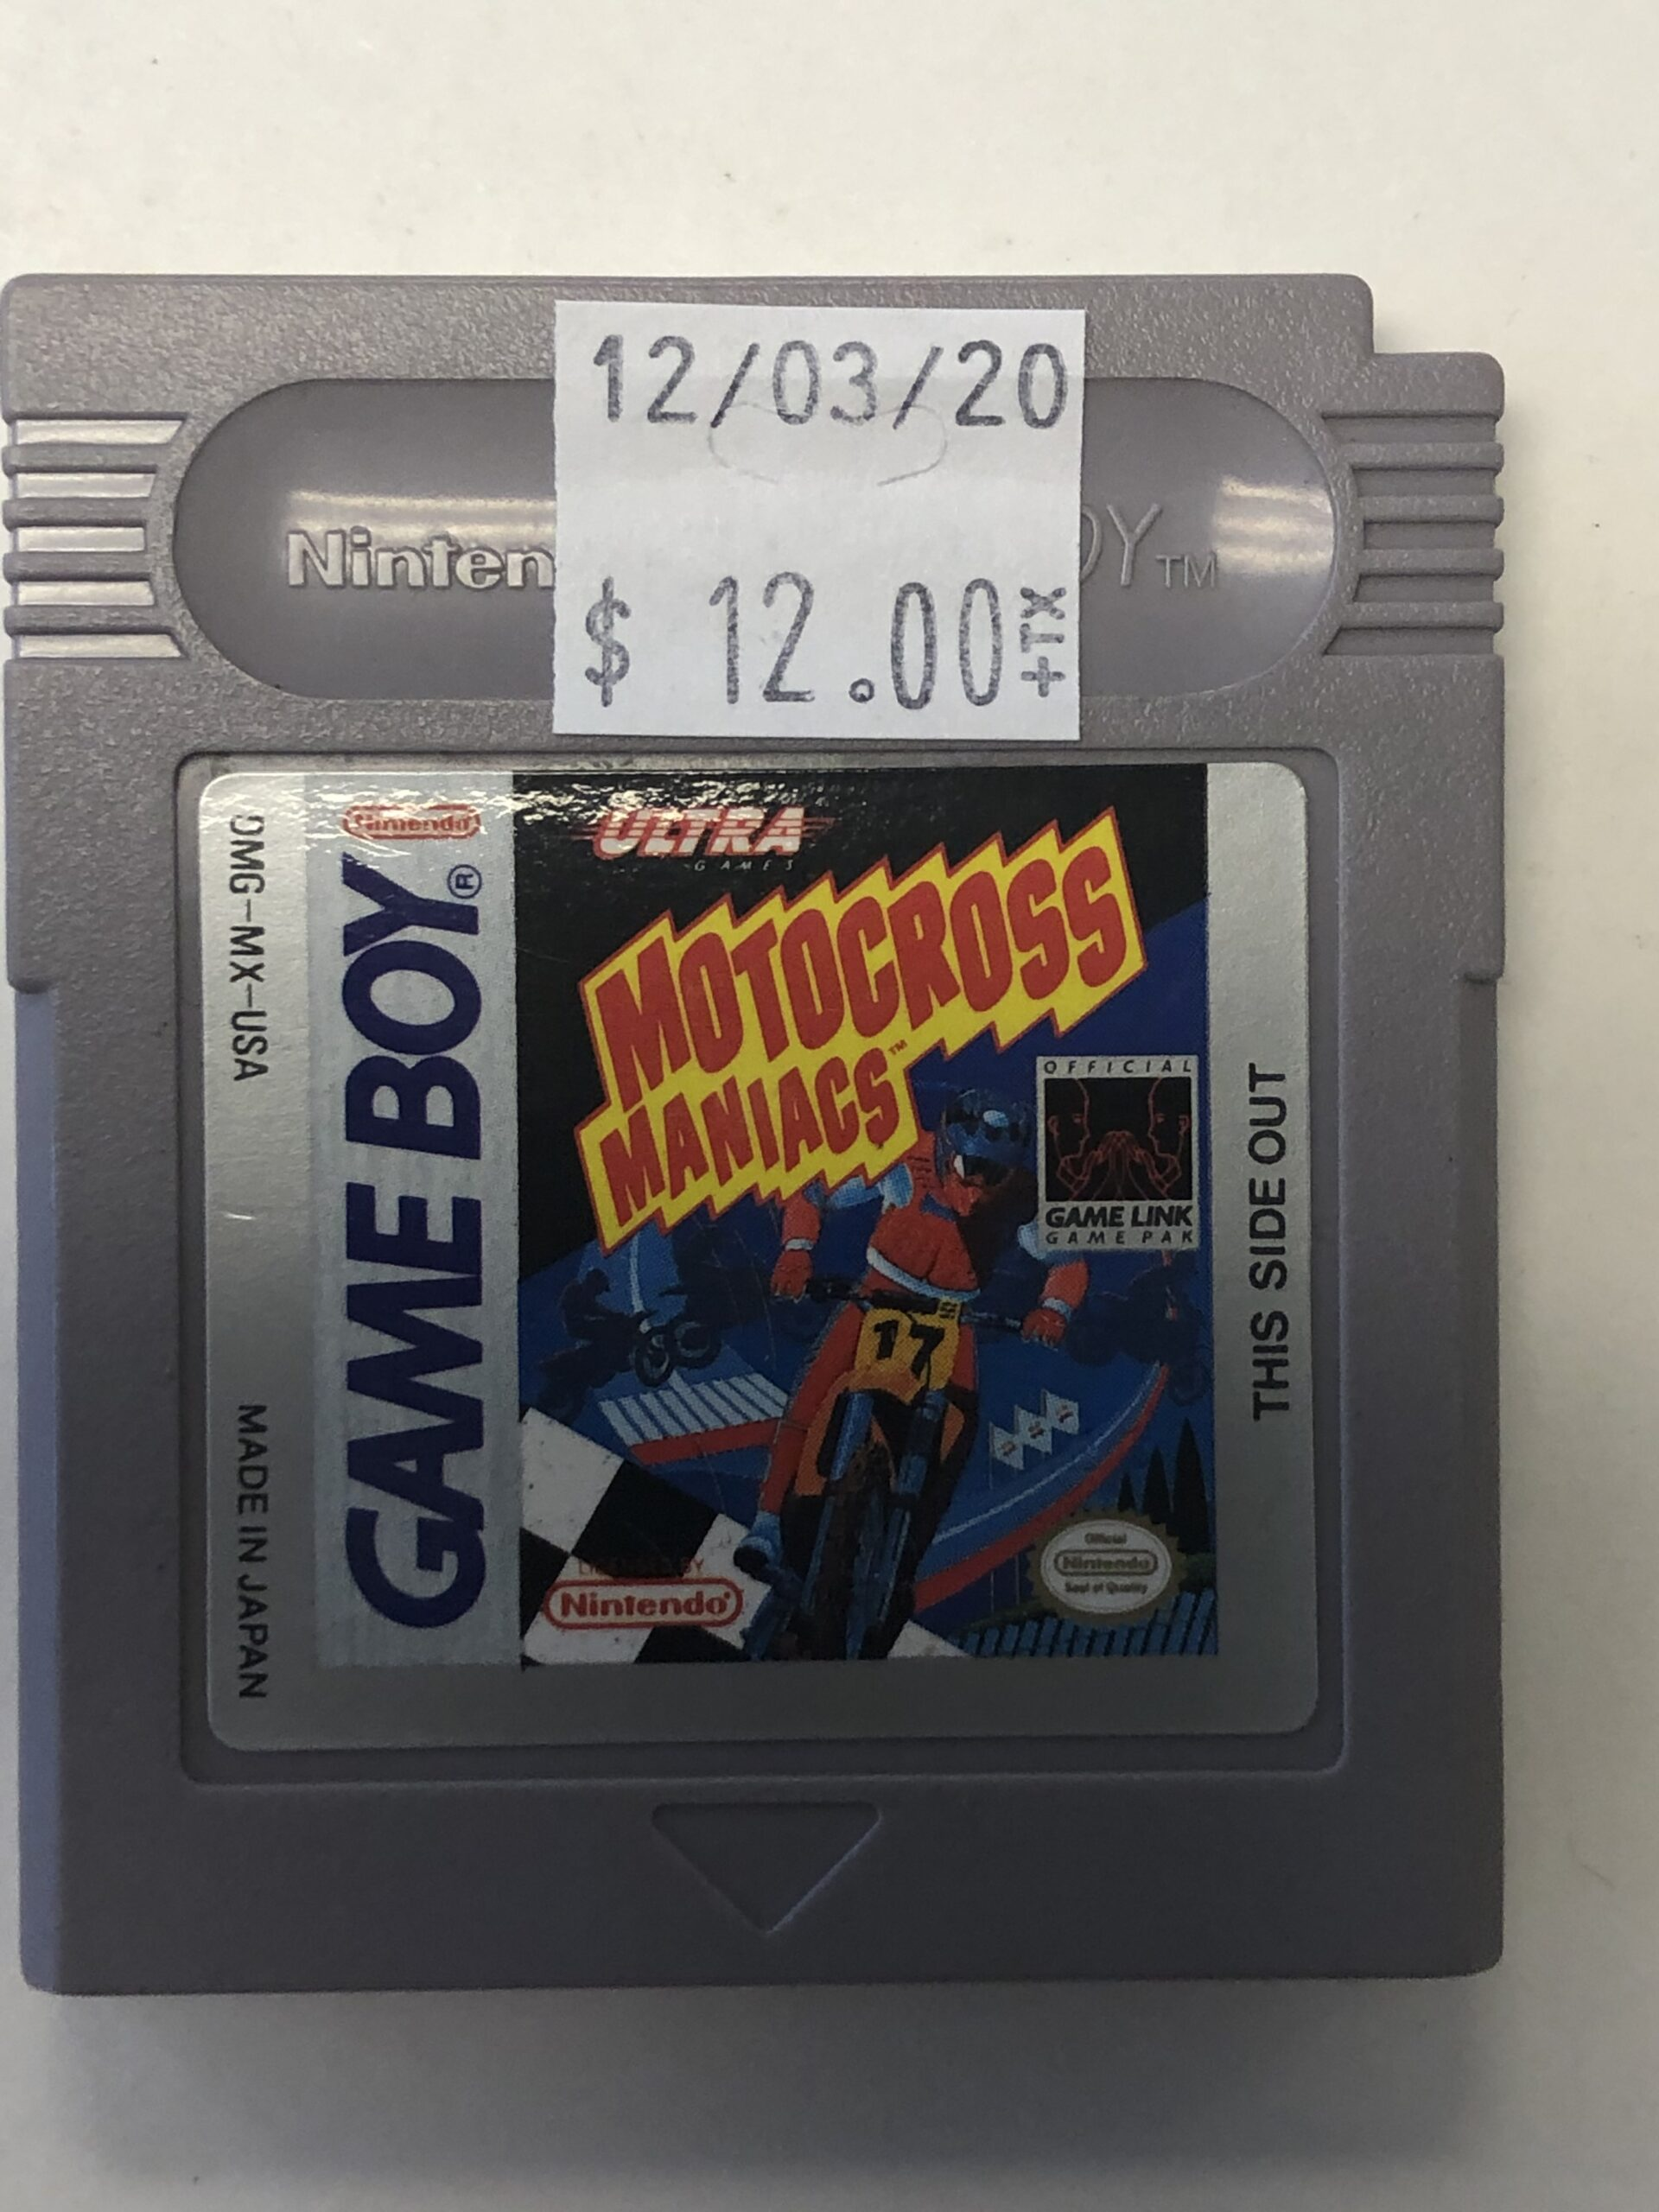 Motorcross Maniacs Cartridge Gameboy